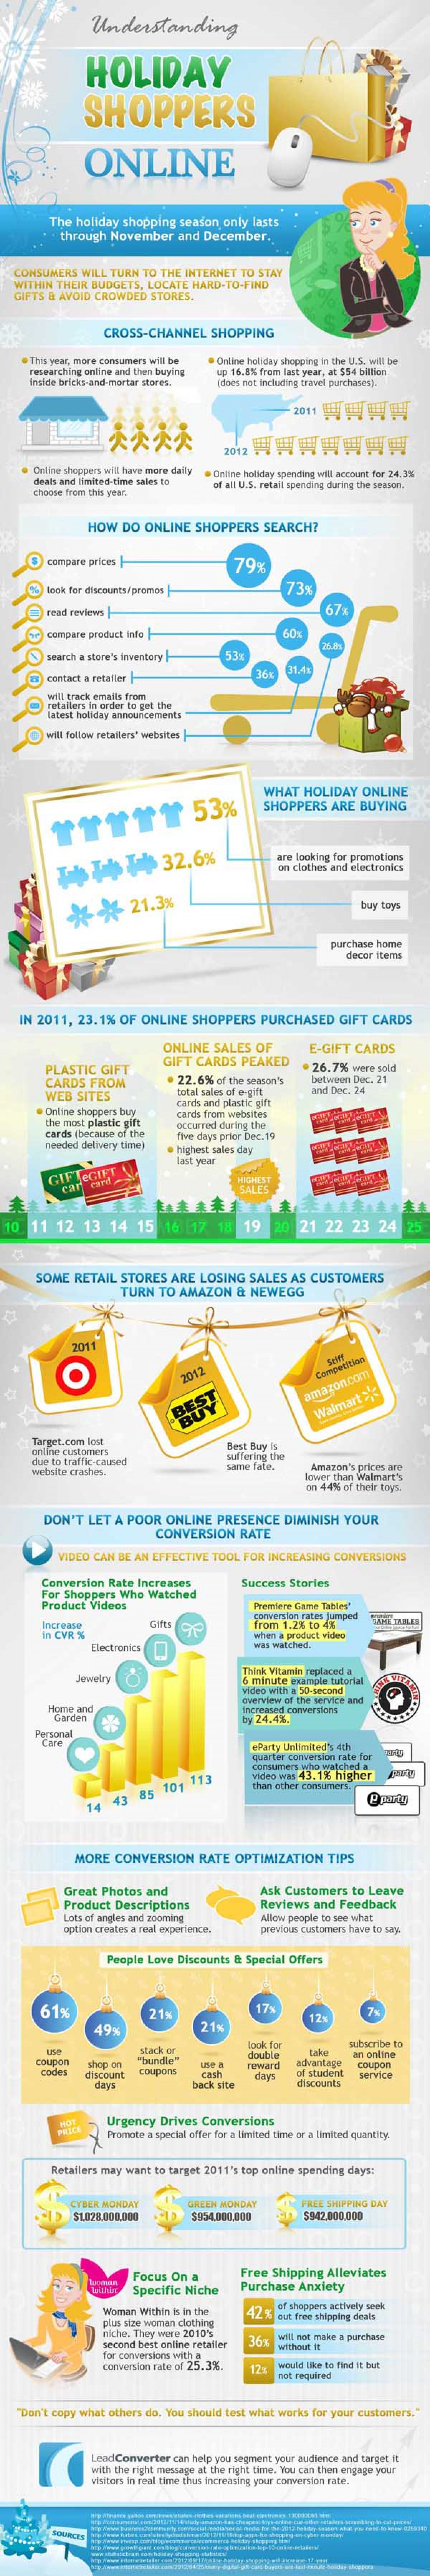 Understanding Holiday Shoppers Online Infographic